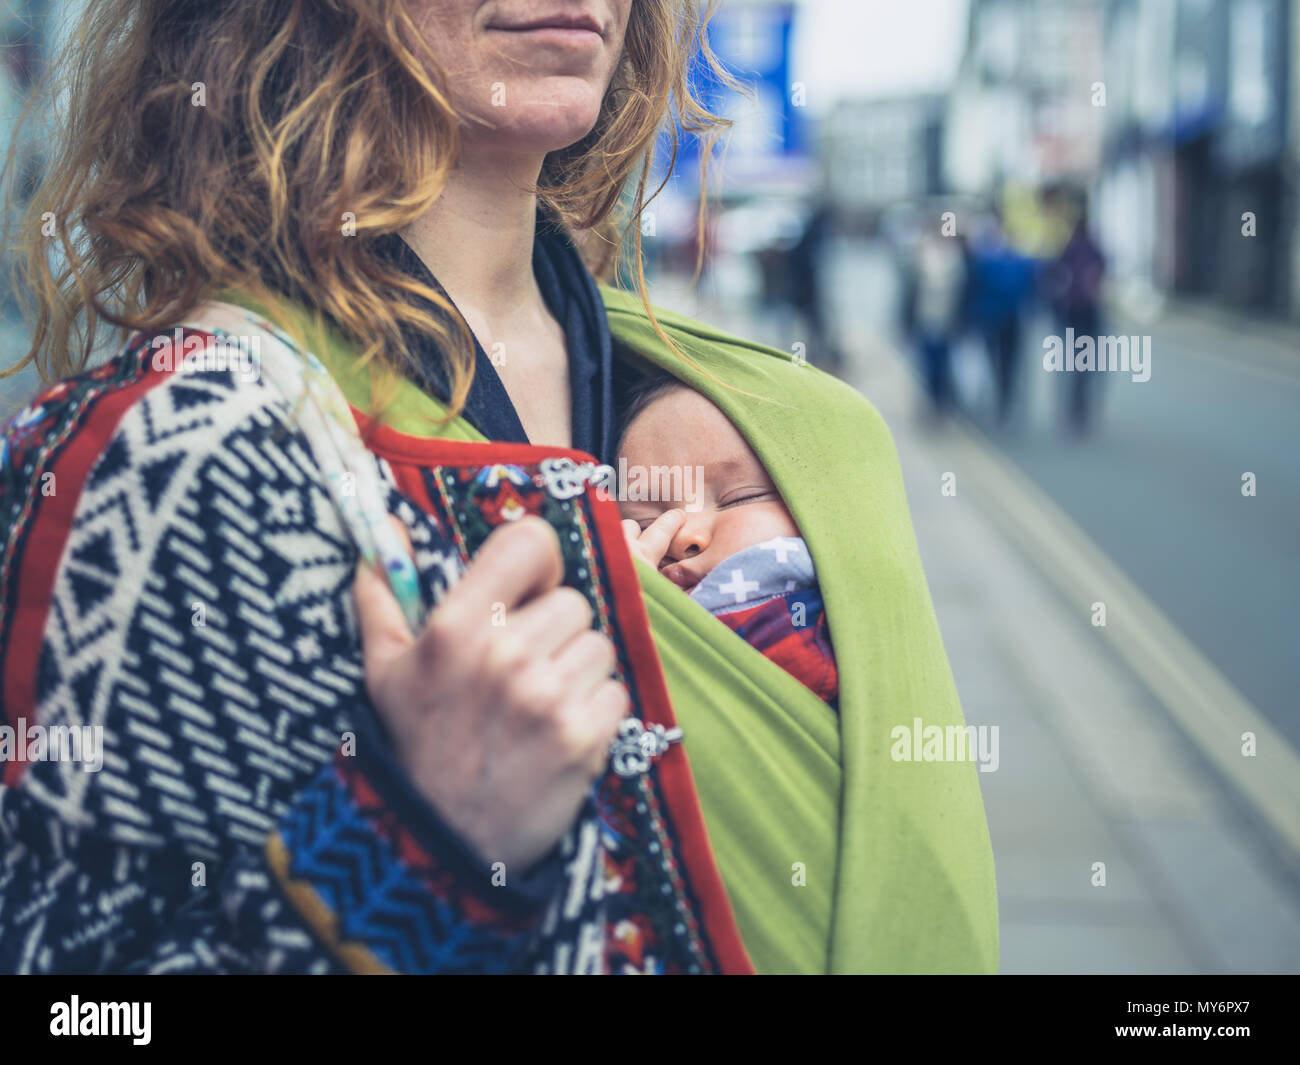 A young mother in the street with her baby in a carrier sling - Stock Image